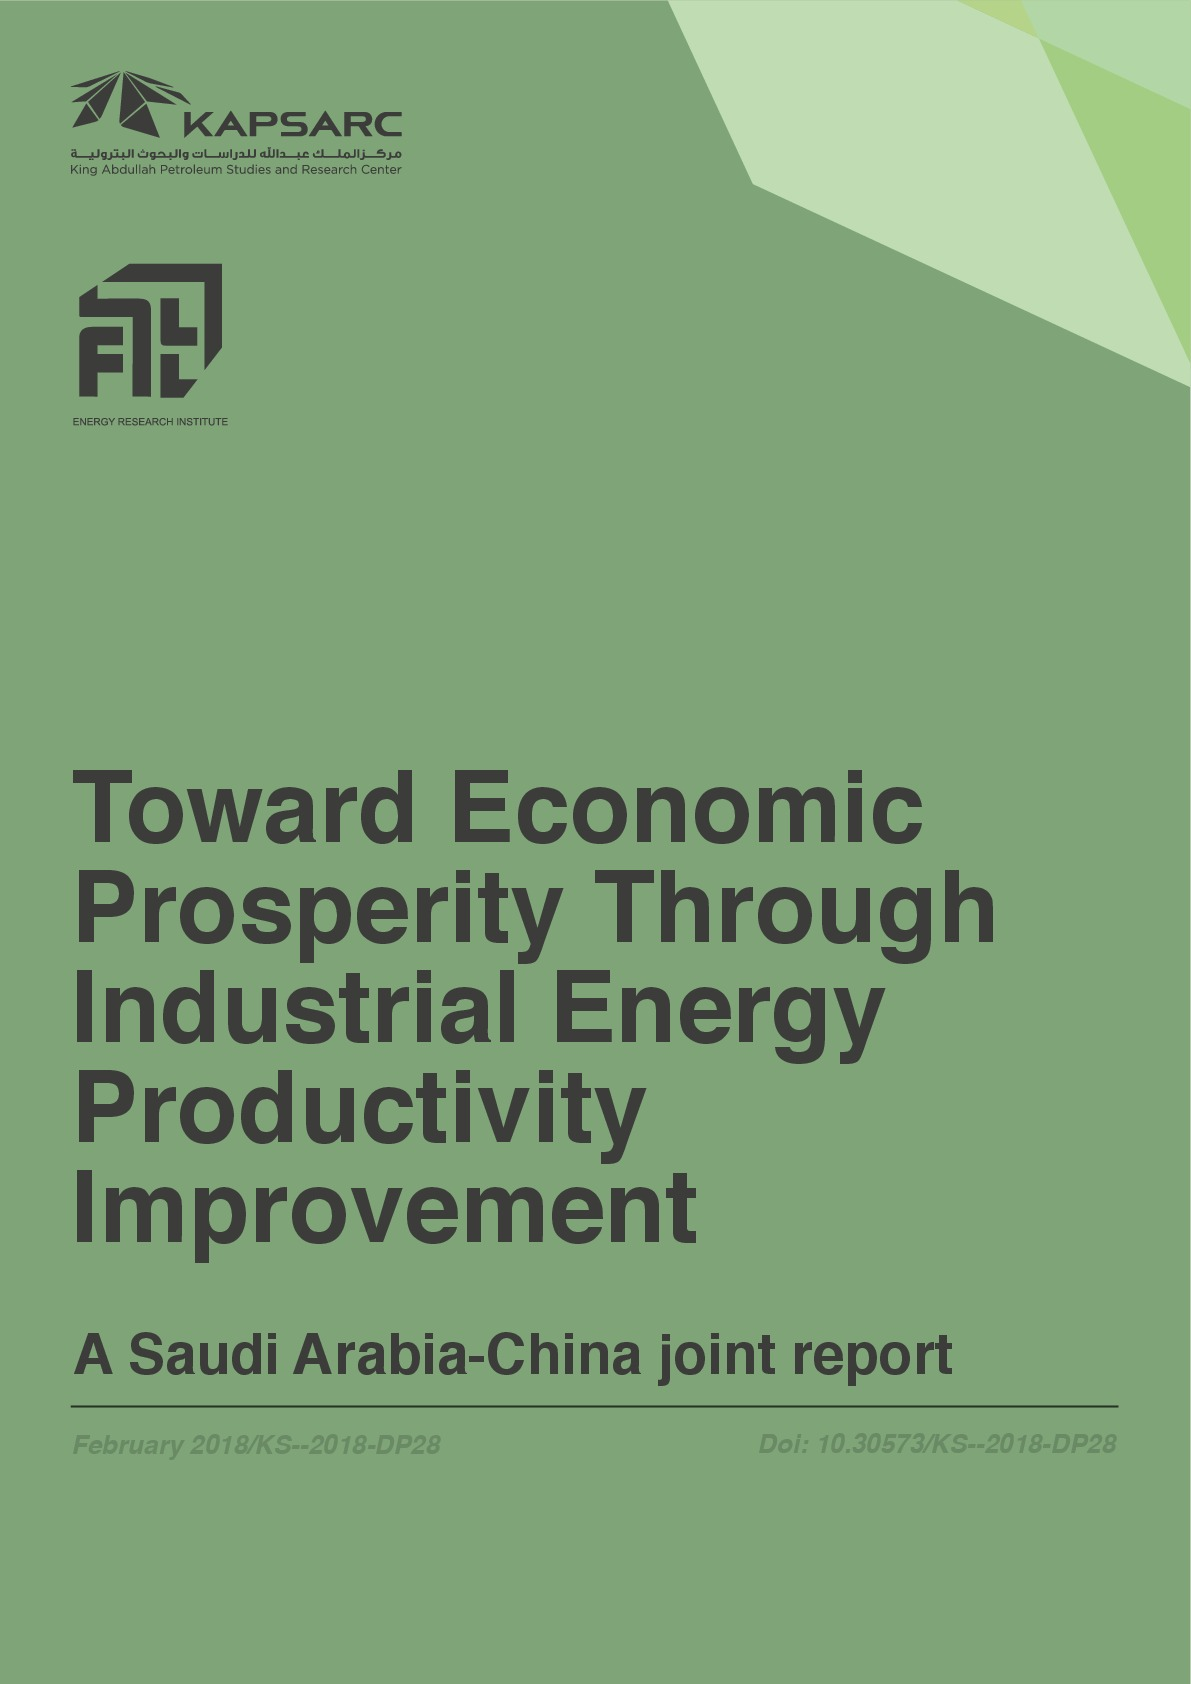 Toward Economic Prosperity Through Industrial Energy Productivity Improvement